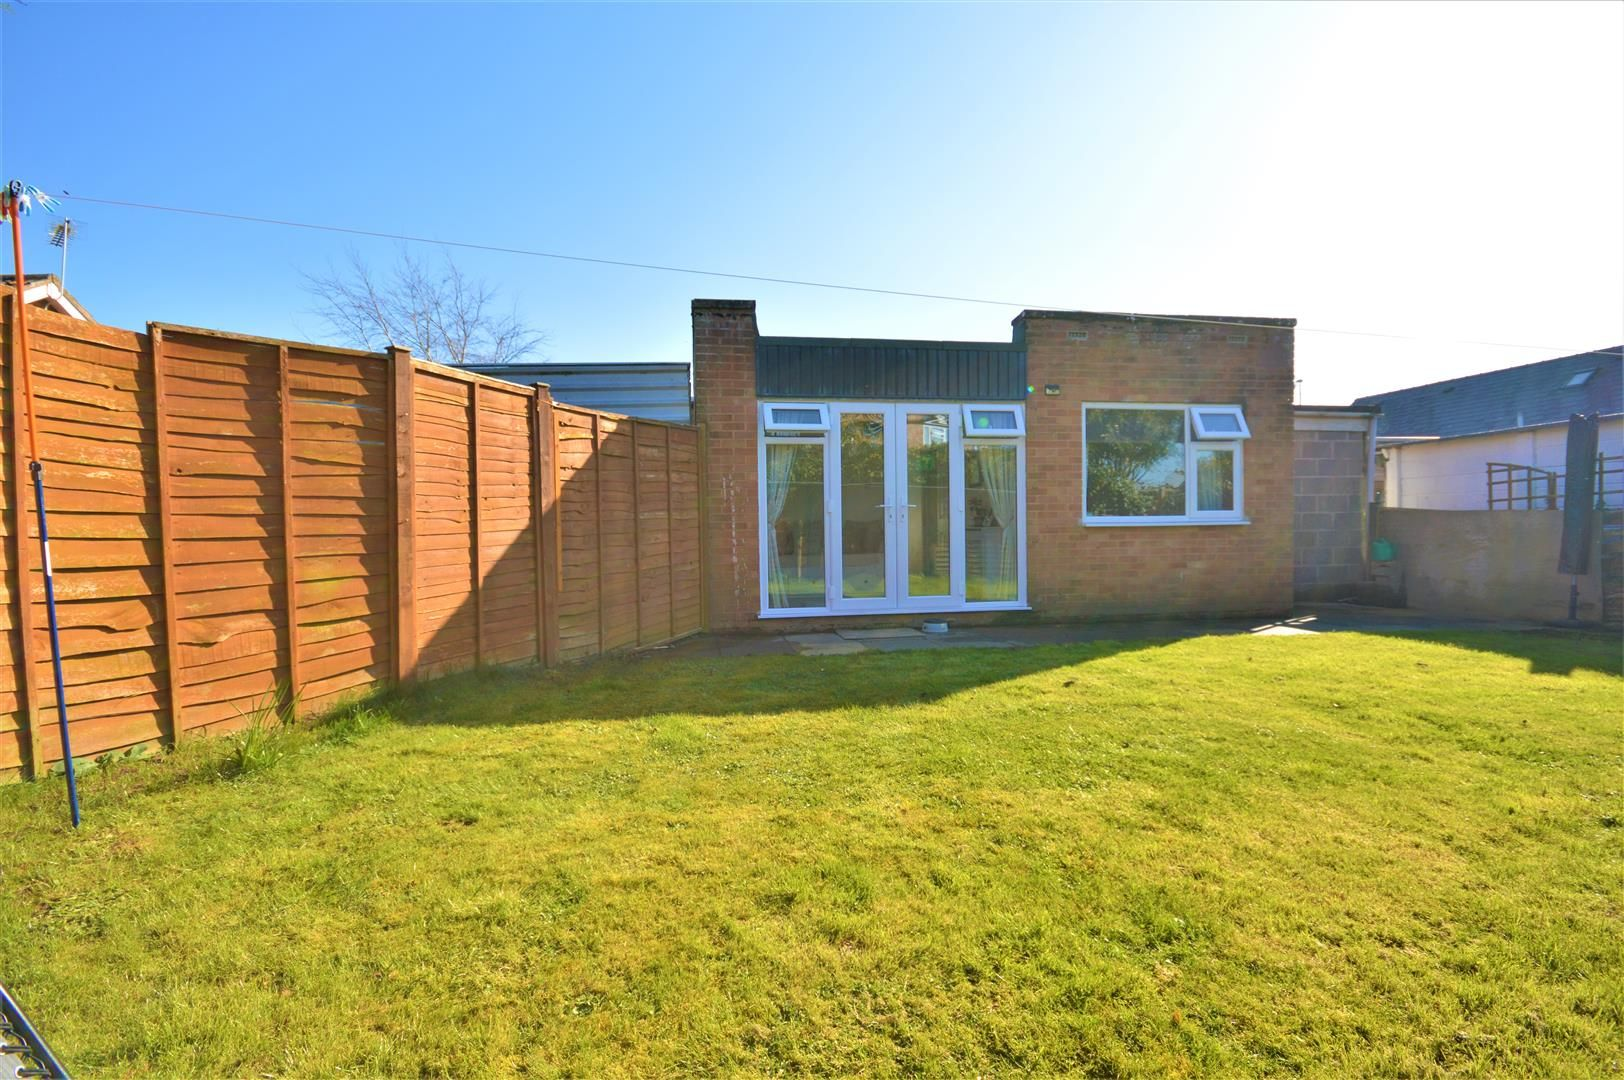 2 bed semi-detached-bungalow for sale in Marden 8